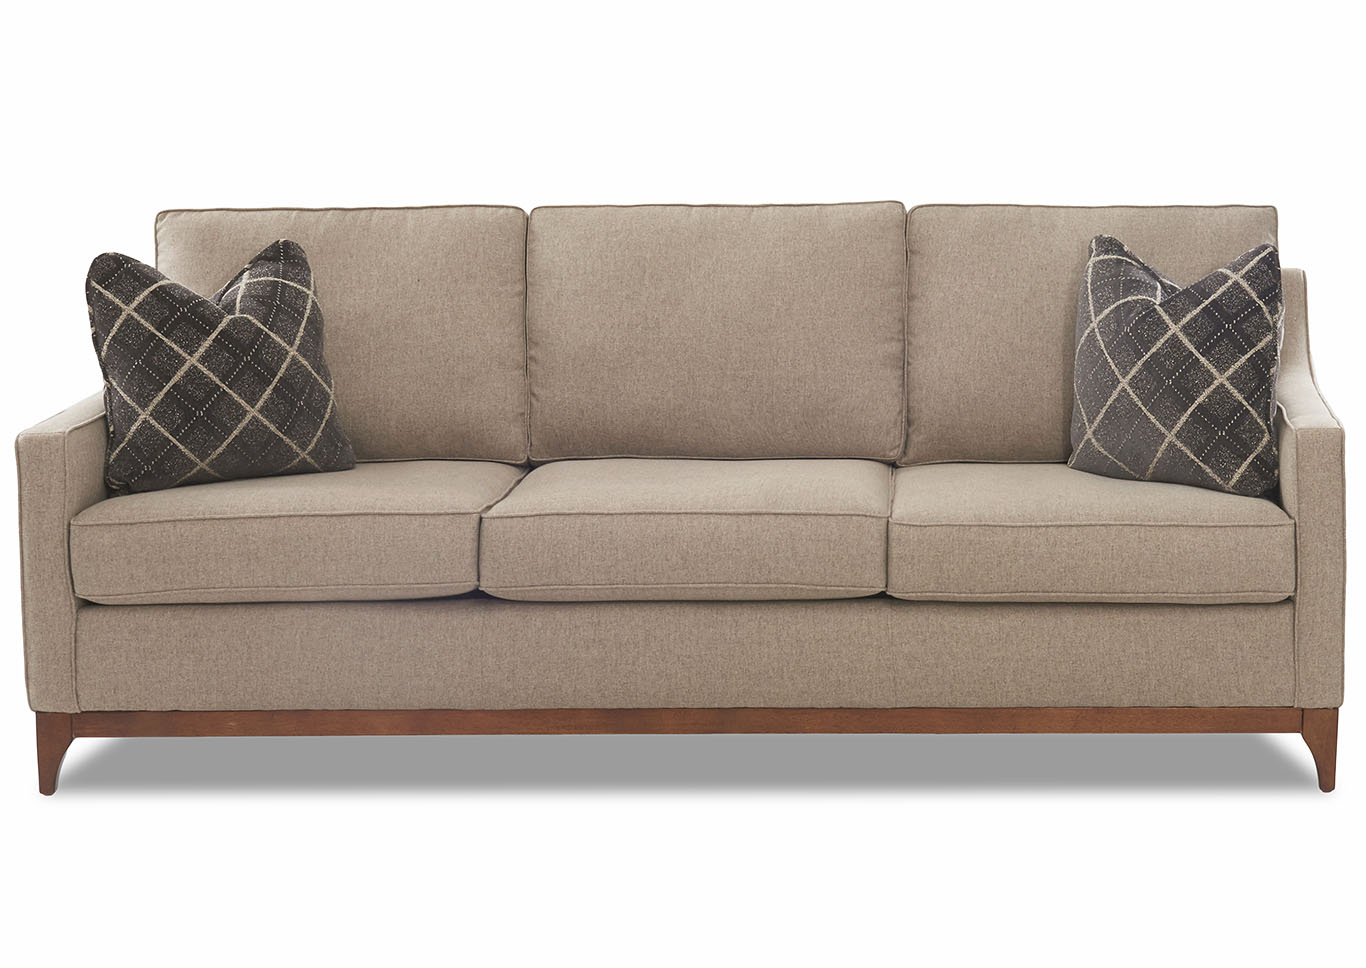 Exceptionnel Anson Stationary Fabric Sofa,Klaussner Home Furnishings